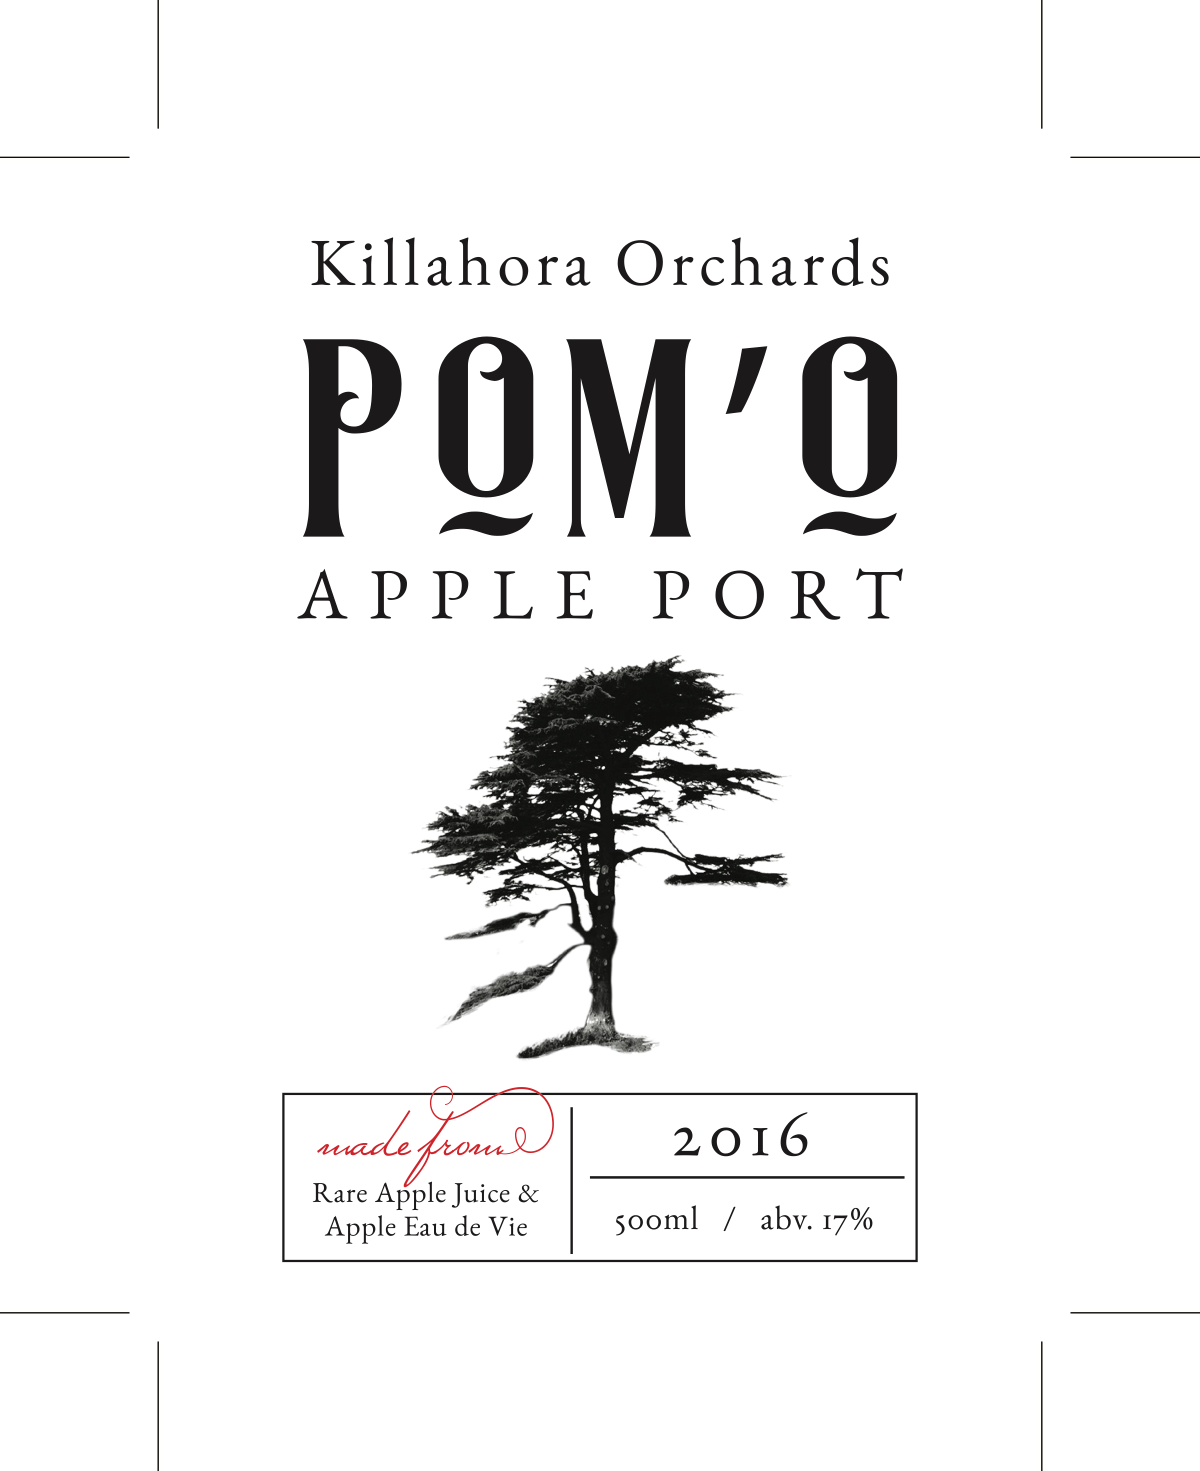 POrt label and Cider label update